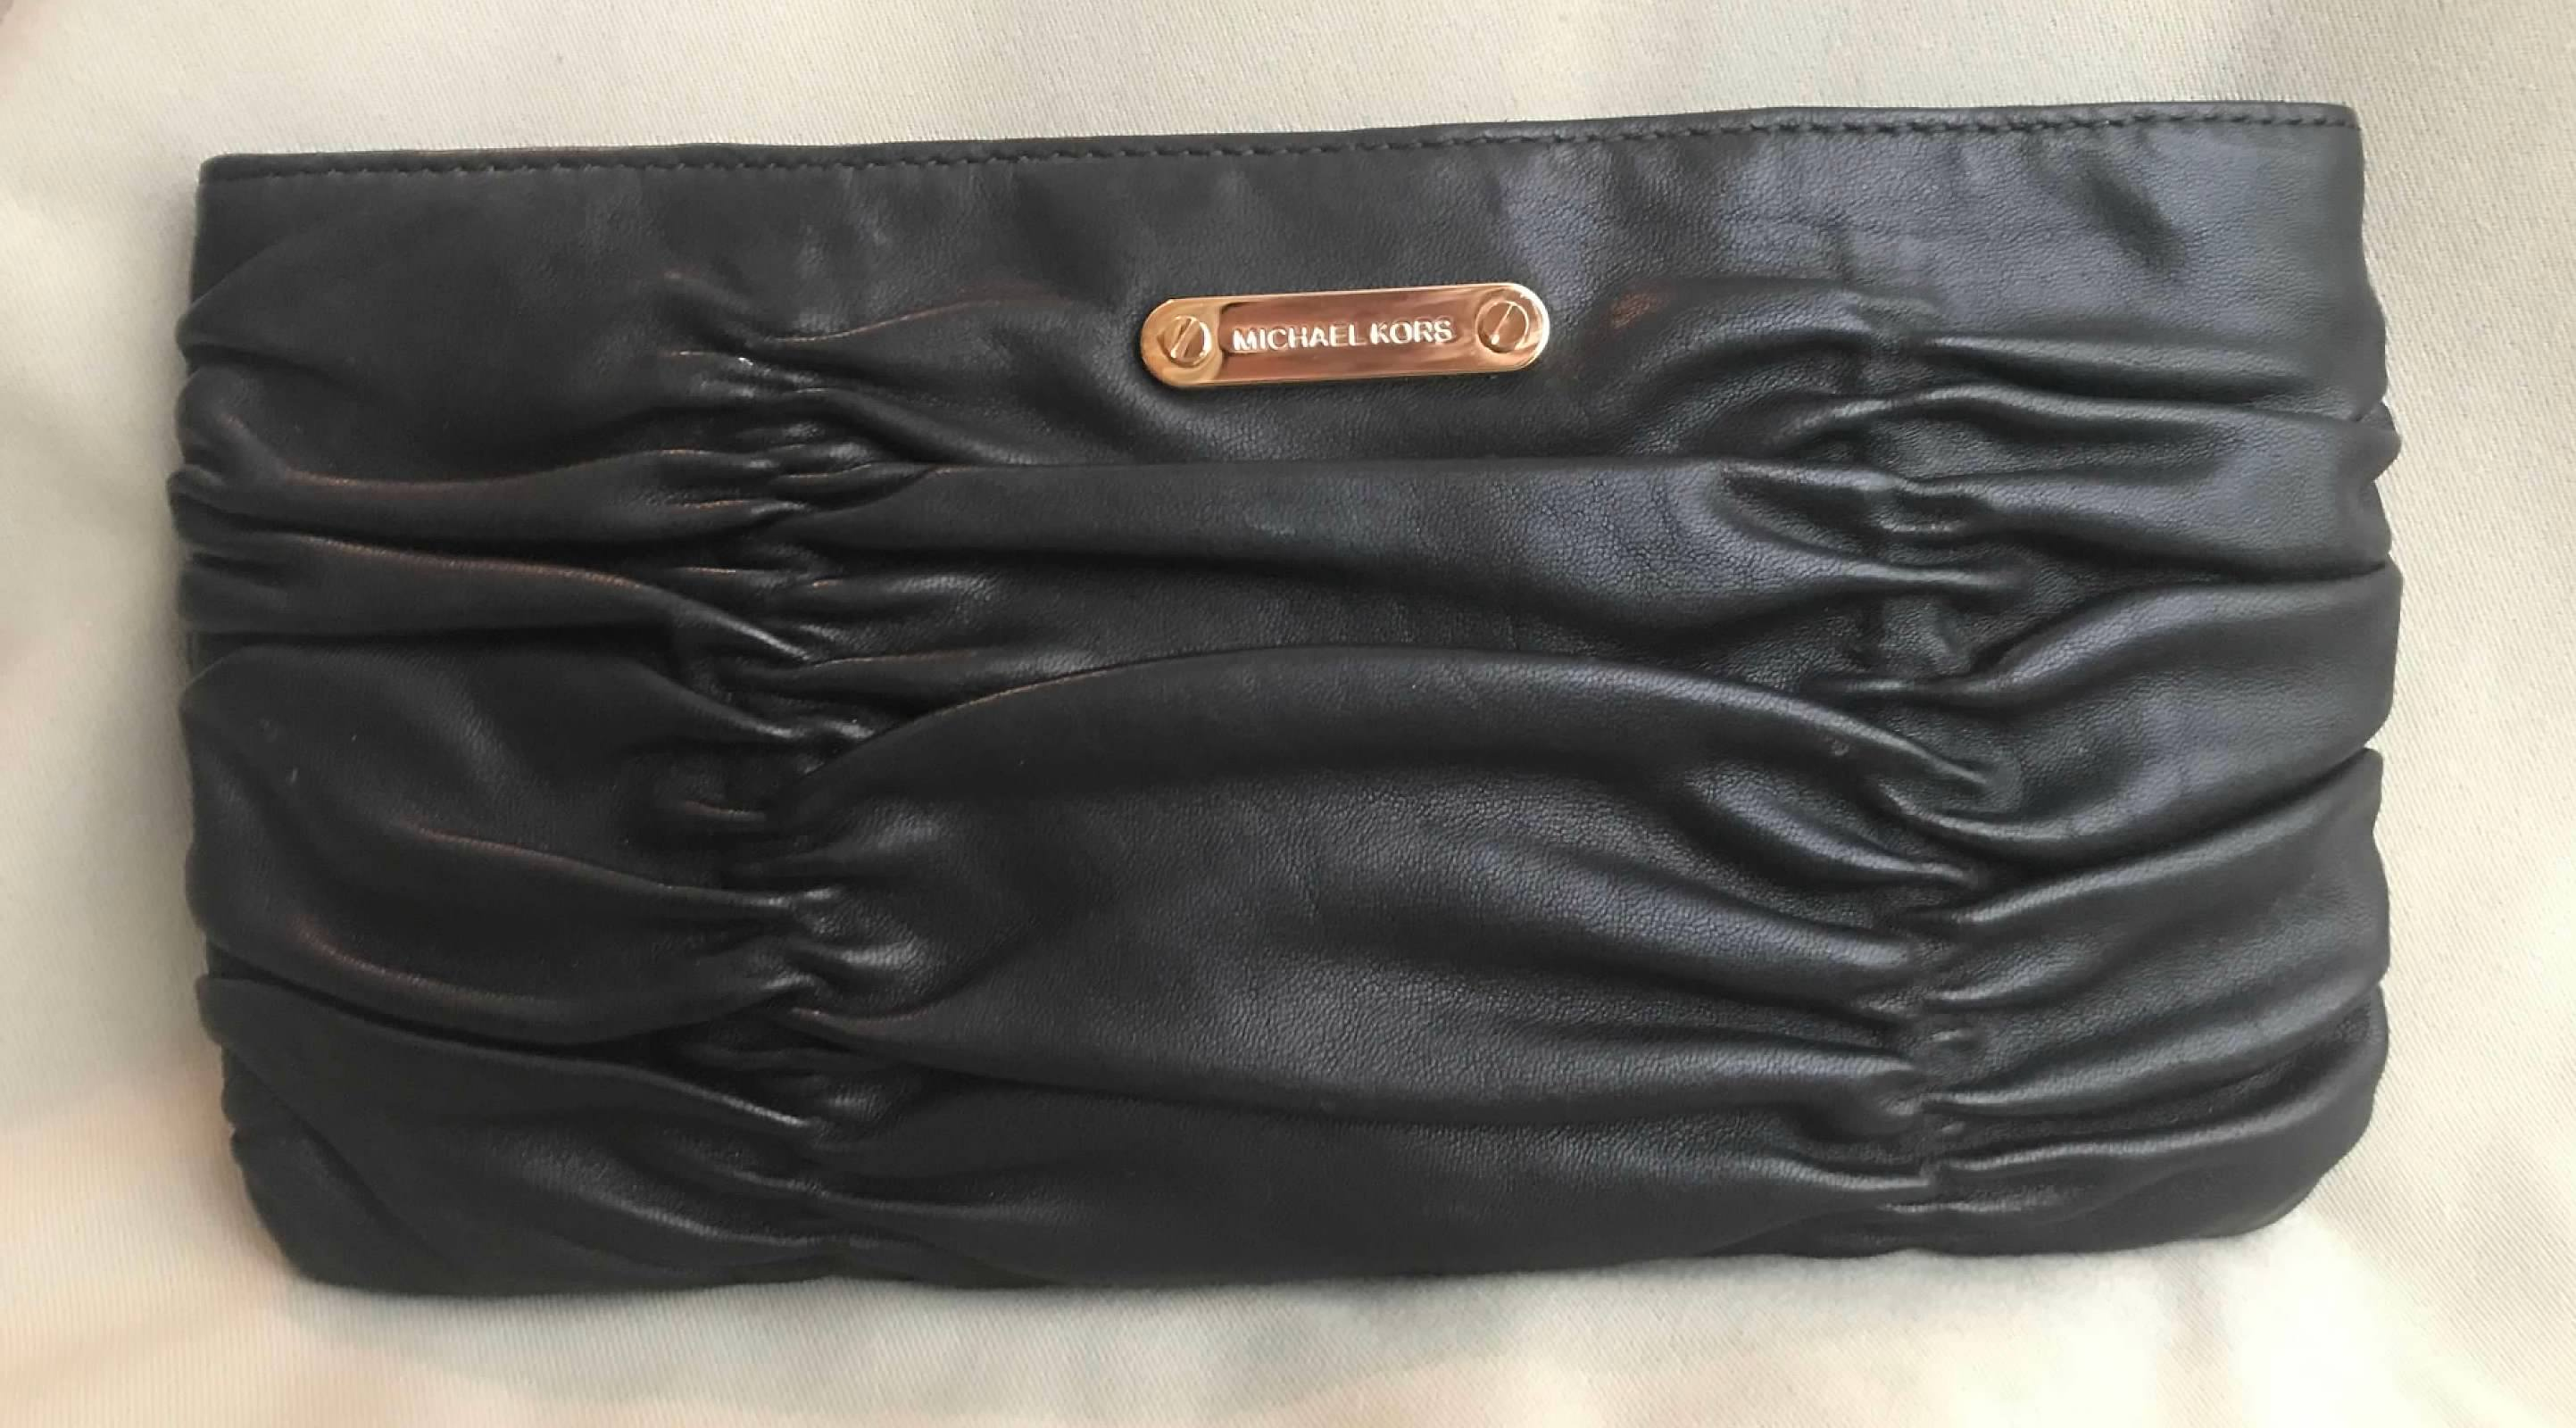 4dae5d378223 Details about NEW MICHAEL KORS Black 100% Leather WEBSTER Classic Clutch  Vintage Style Bag